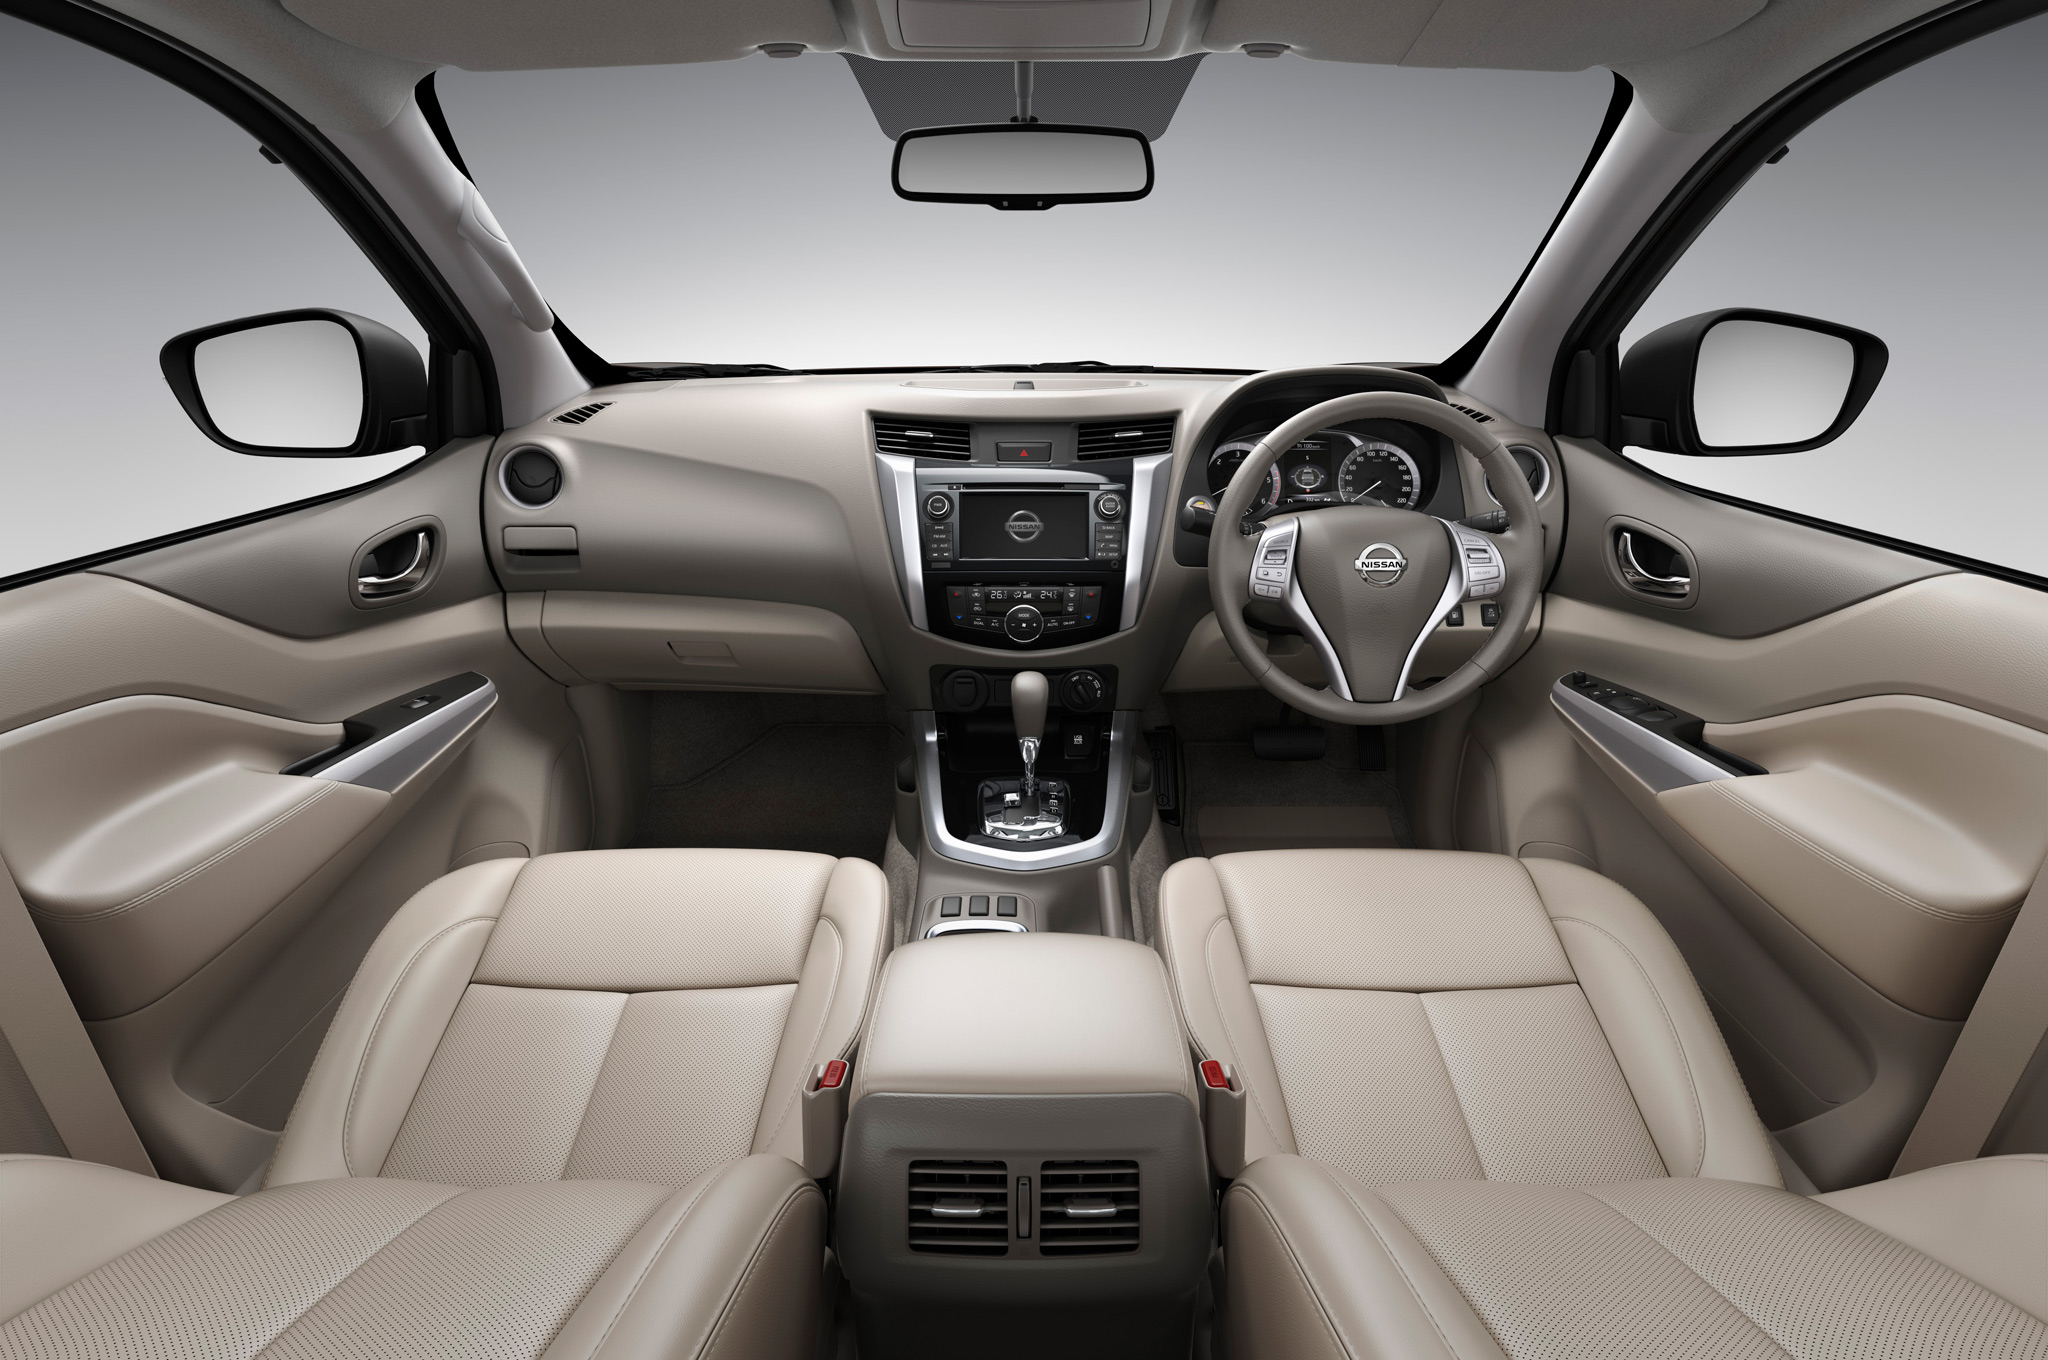 2015 All New Nissan Np300 Navara Interior Dashboard (Photo 4 of 6)